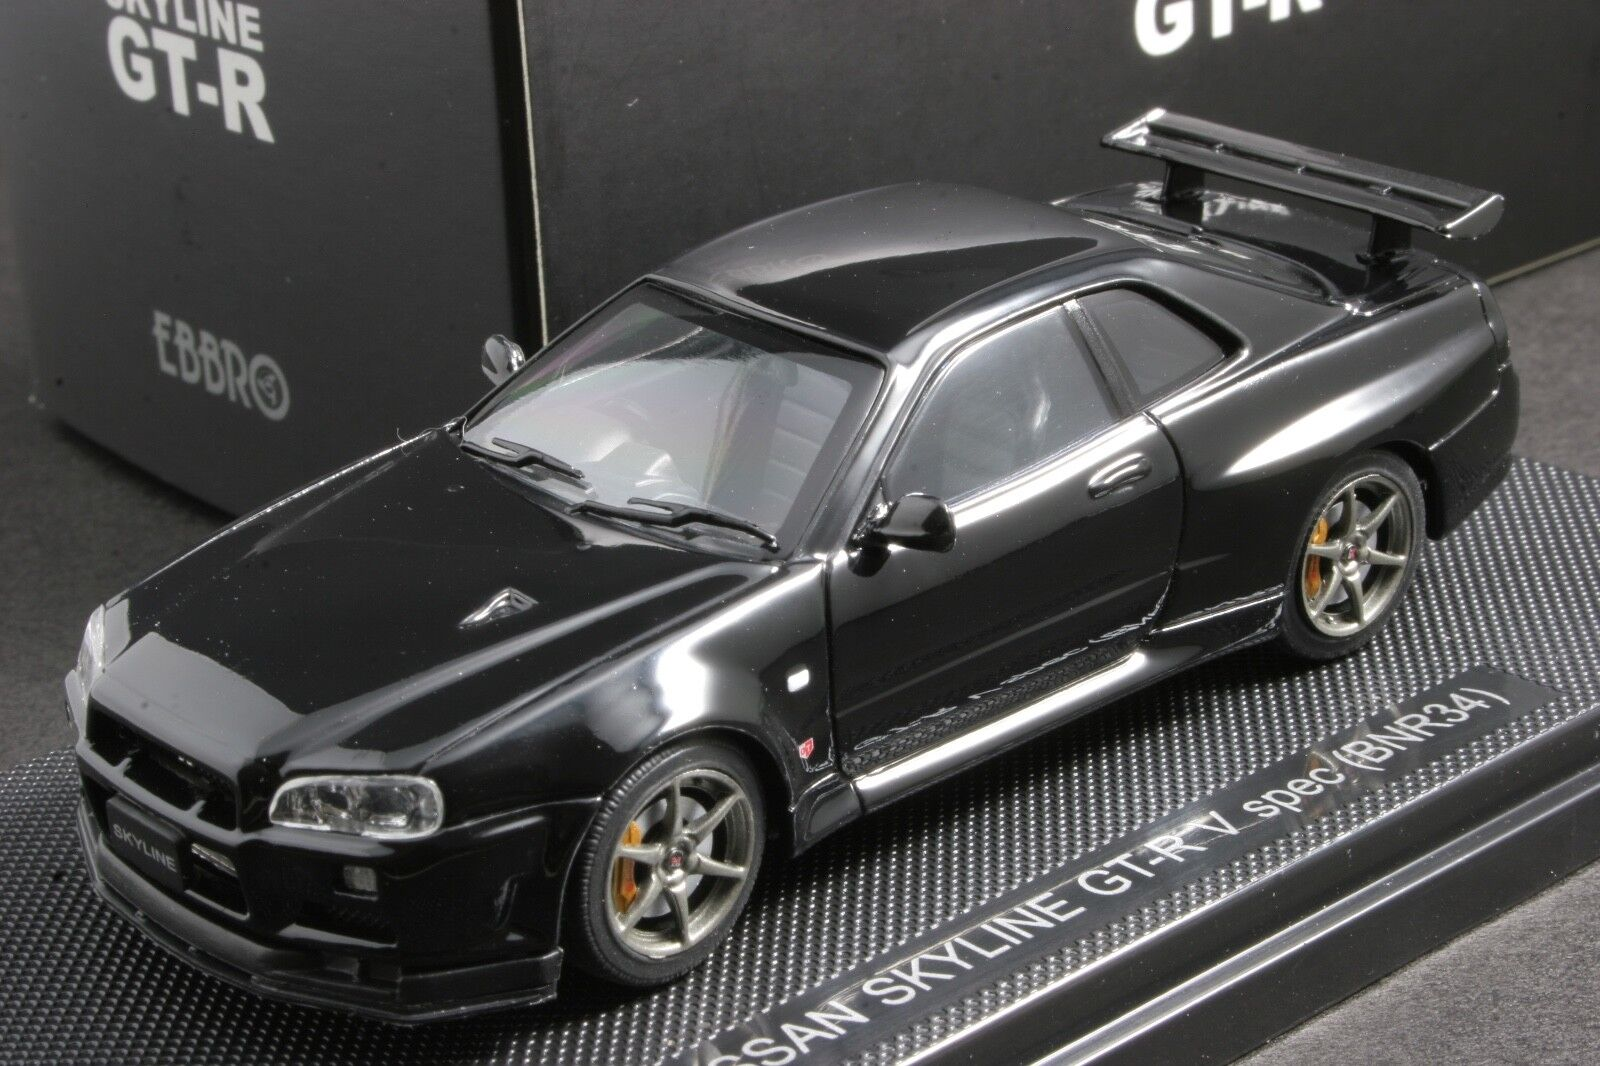 1 43 Hpi Resin Model Nissan Skyline Gt R R34 V Spec Ii Nur Millennium Jade New For Sale Online Ebay